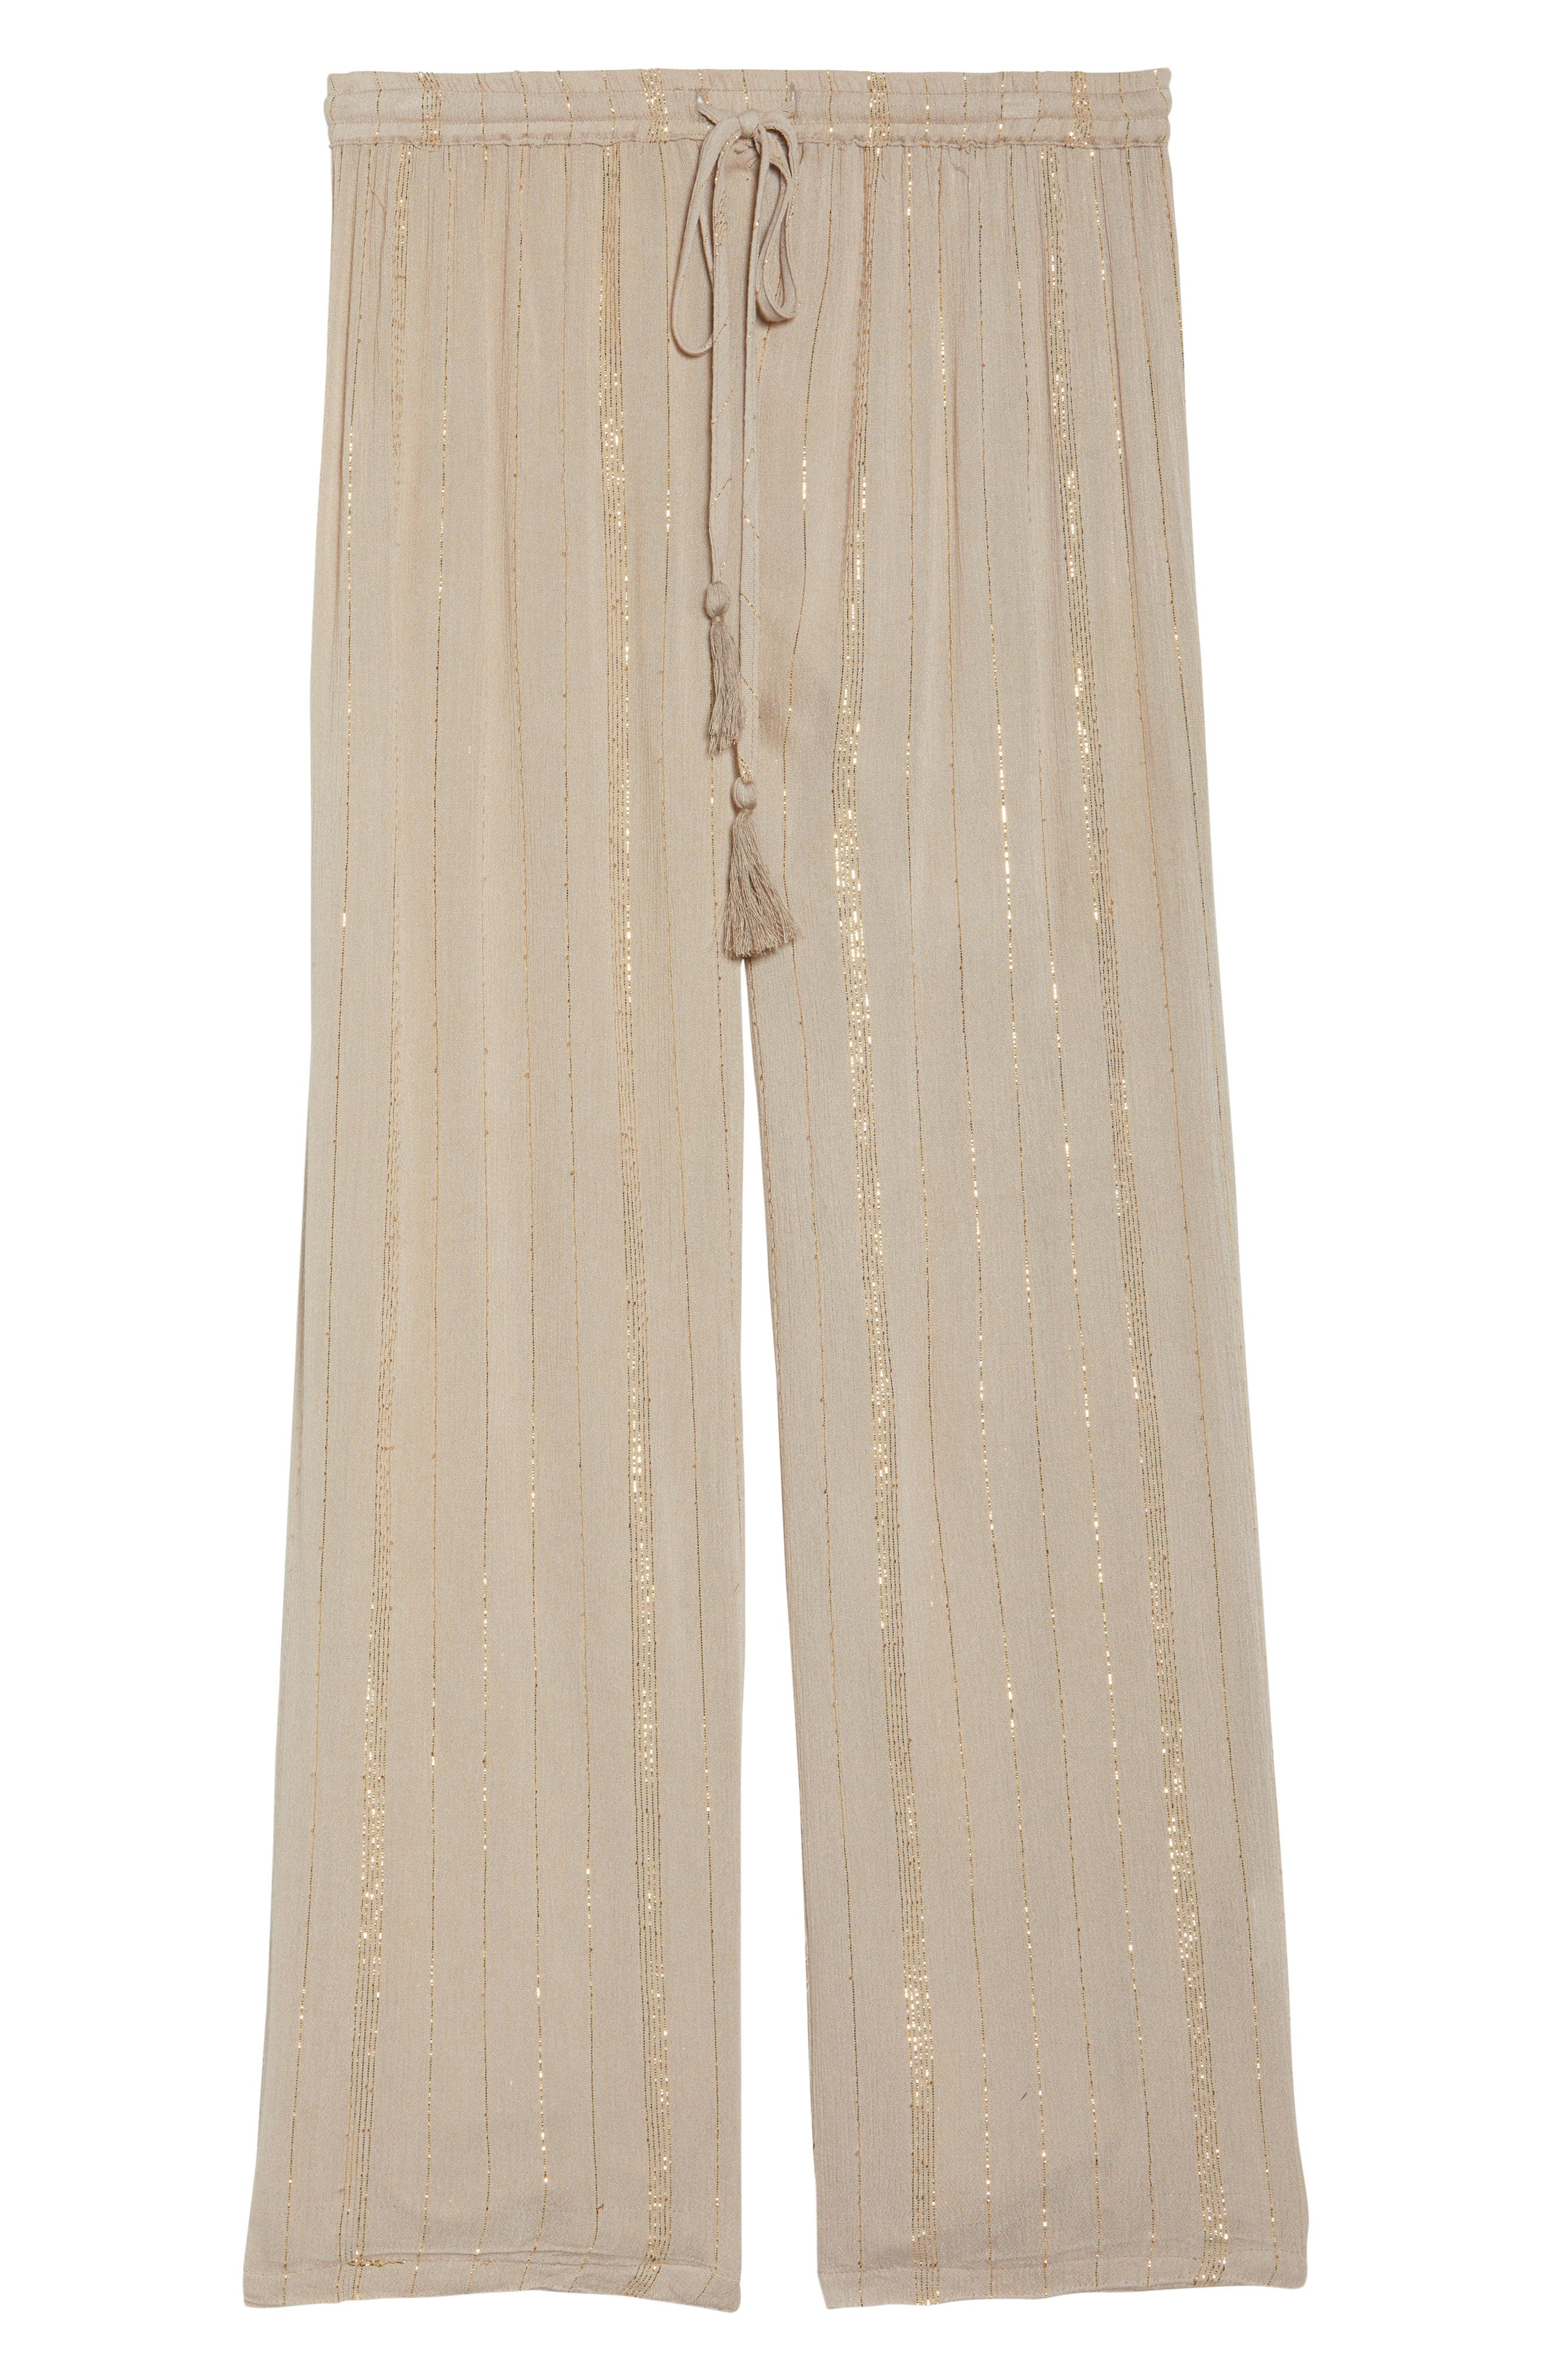 Iris Cover-Up Pants,                             Alternate thumbnail 6, color,                             Taupe/ Gold